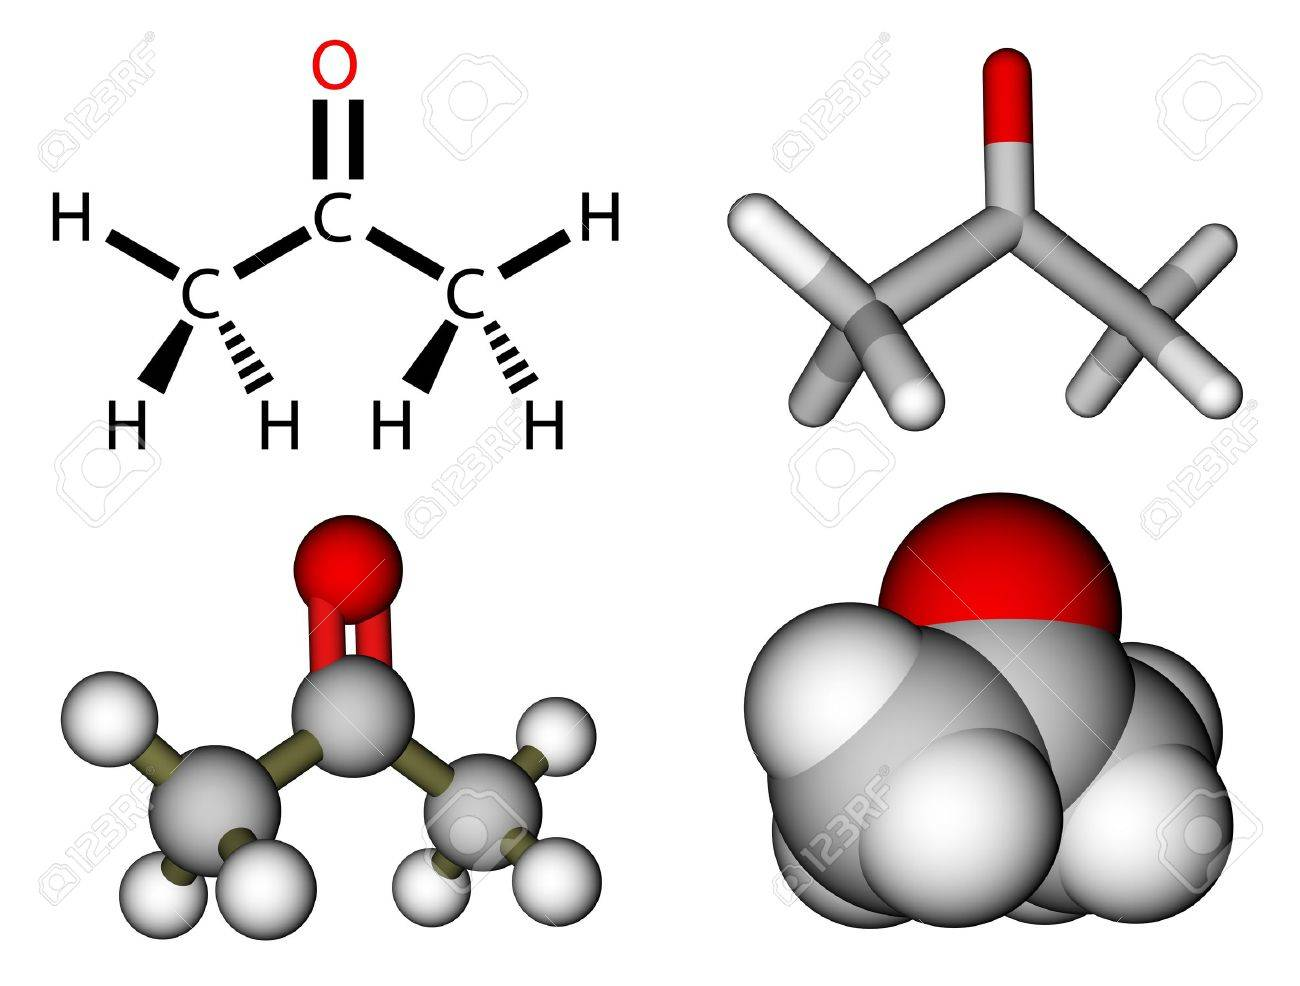 Acetone Structural Formula And Molecular Models Stock Photo ...